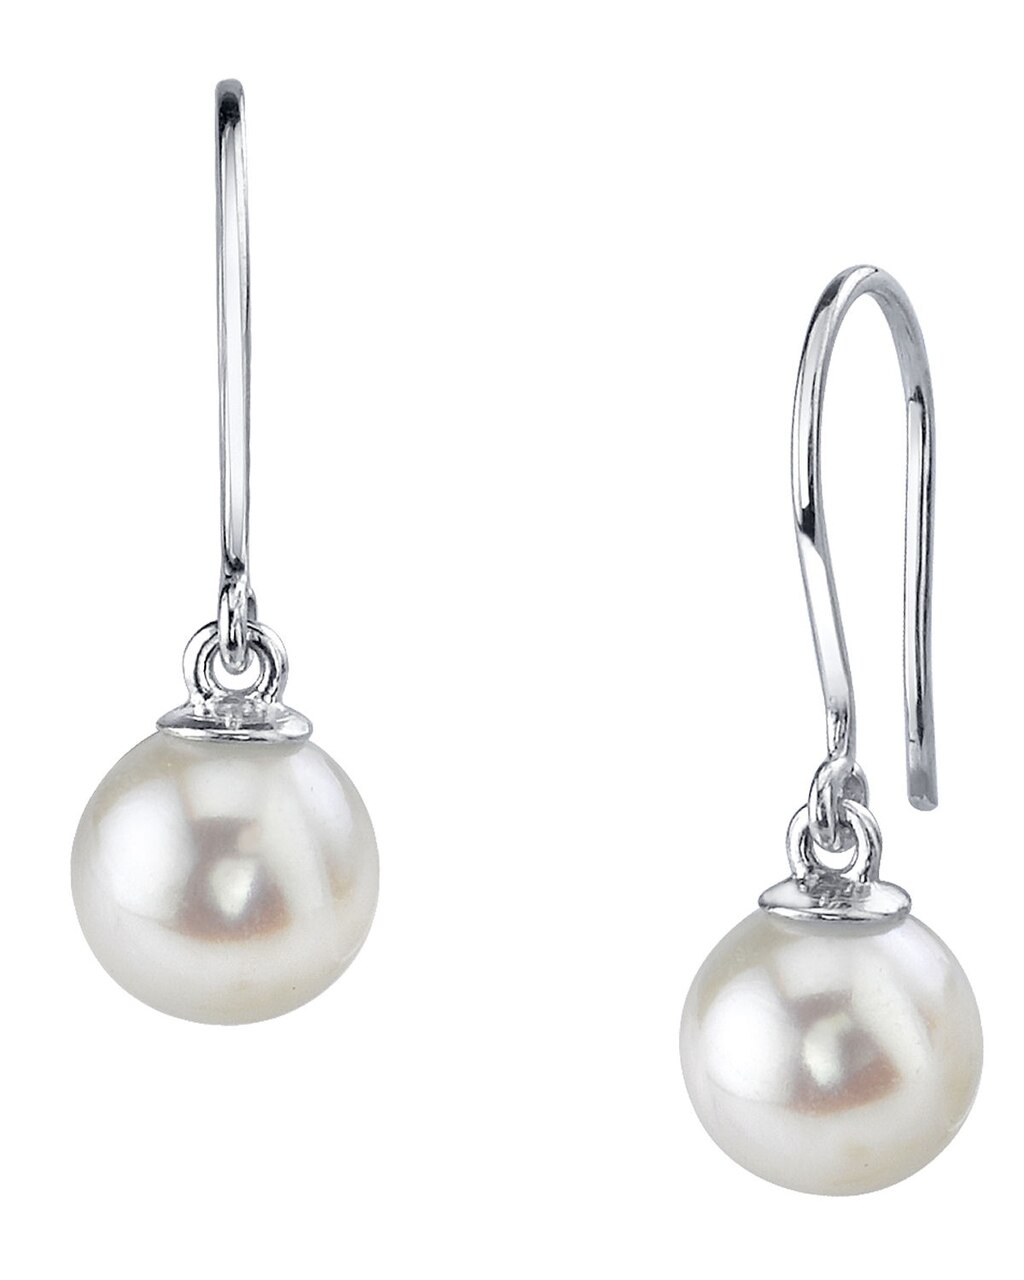 Elegant dangle earrings feature two 7.5-8.0mm Japanese Akoya pearls, selected for their luminous luster